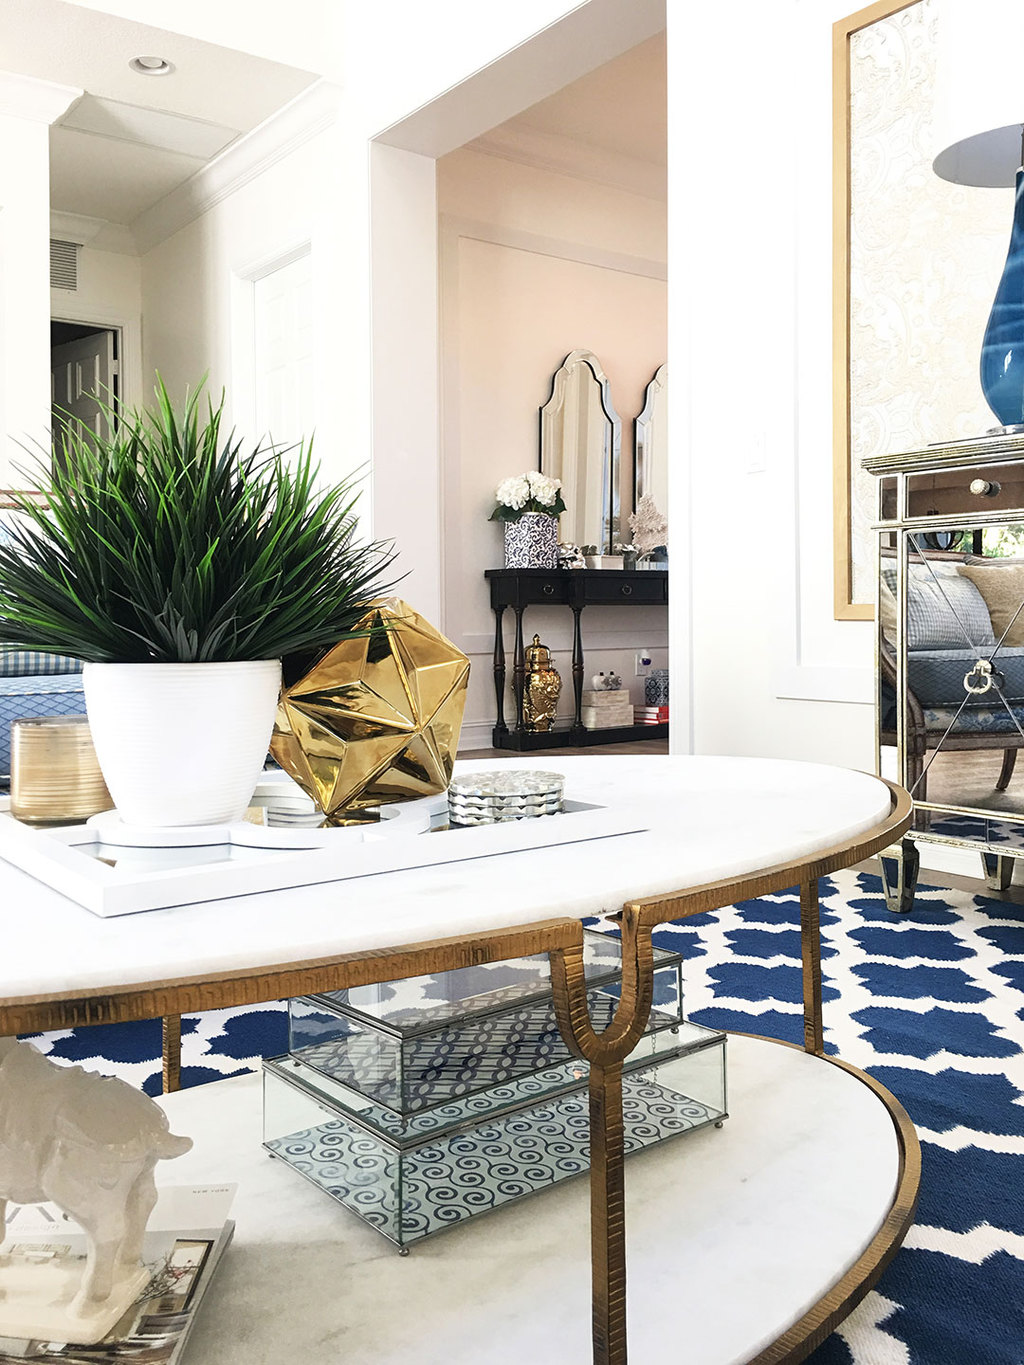 marble-cofee-table-gold-accents-blue-rug